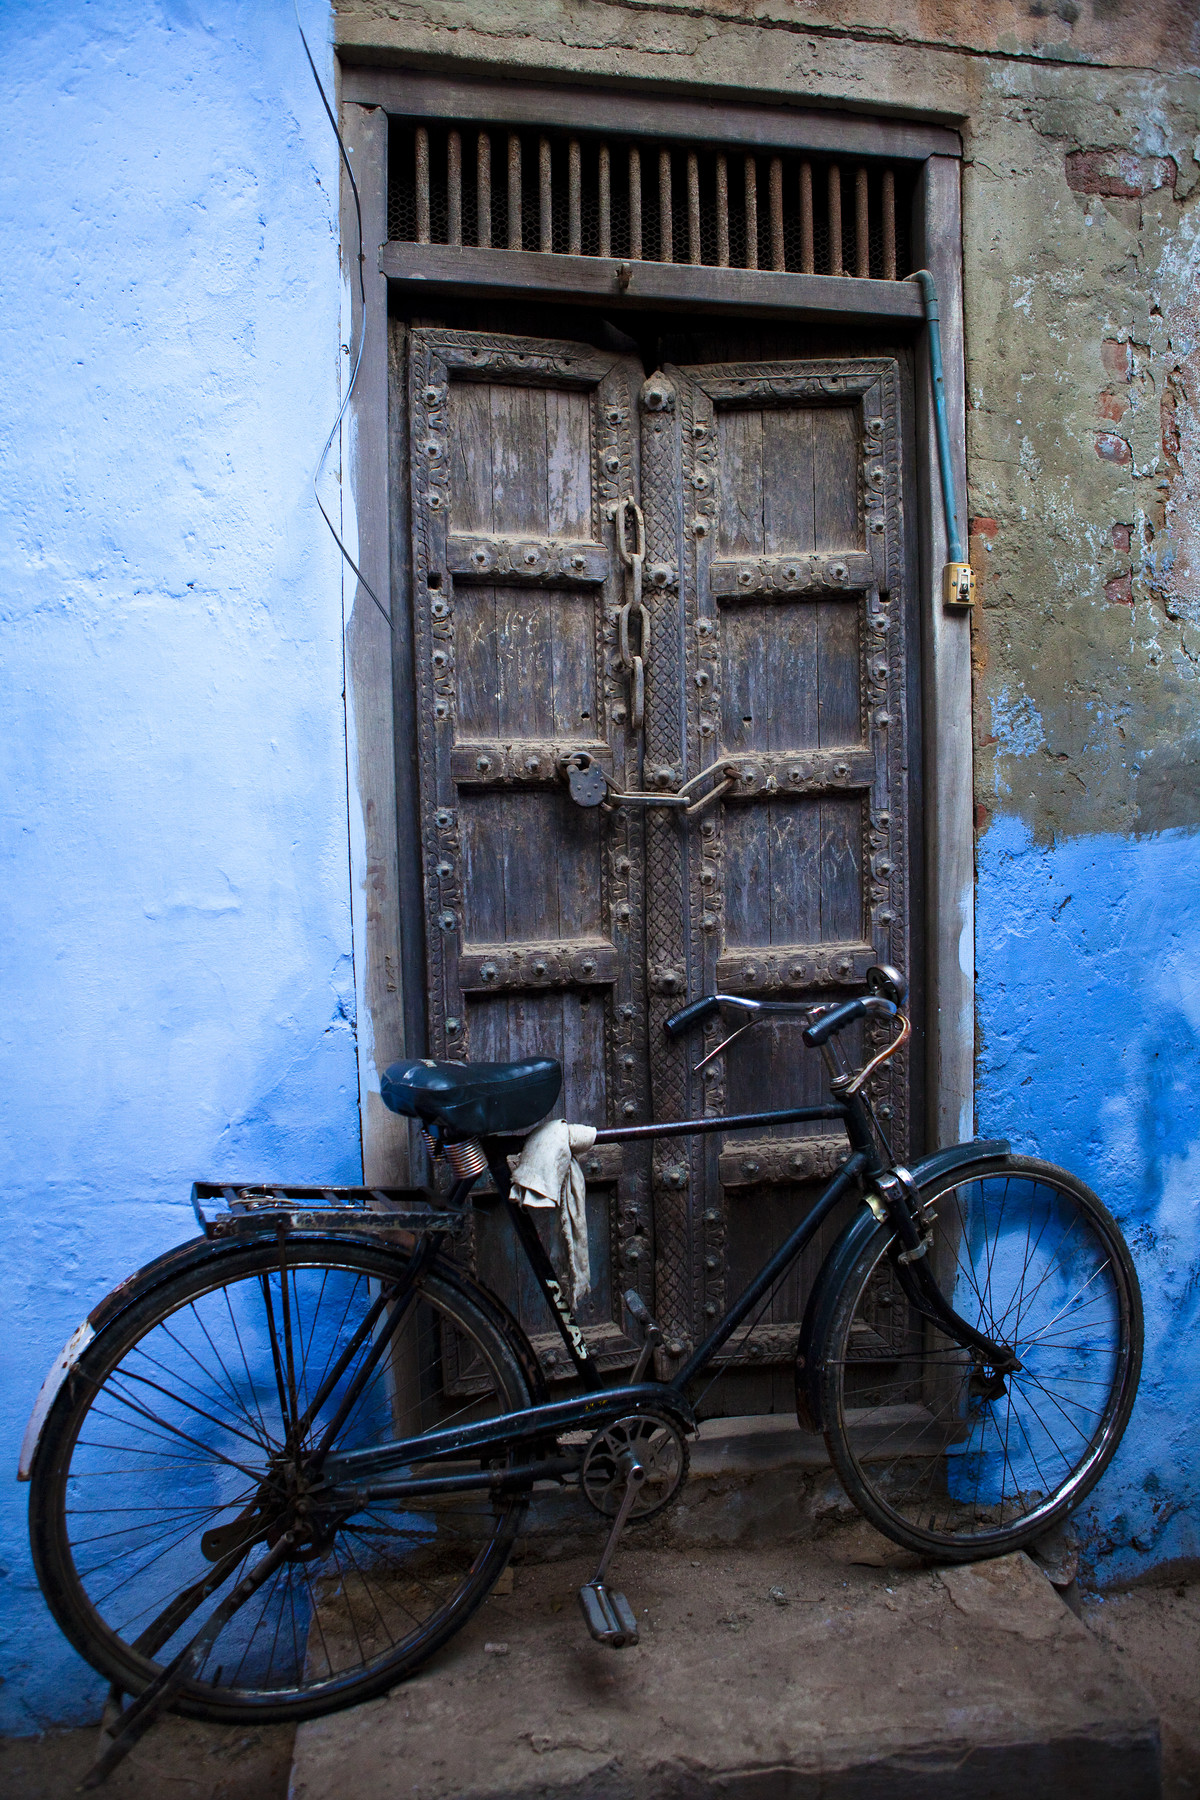 The Blue Dorrway Bicycle by Gautam Vir Prashad, Image Photography, Giclee Print on Hahnemuhle Paper, Gray color